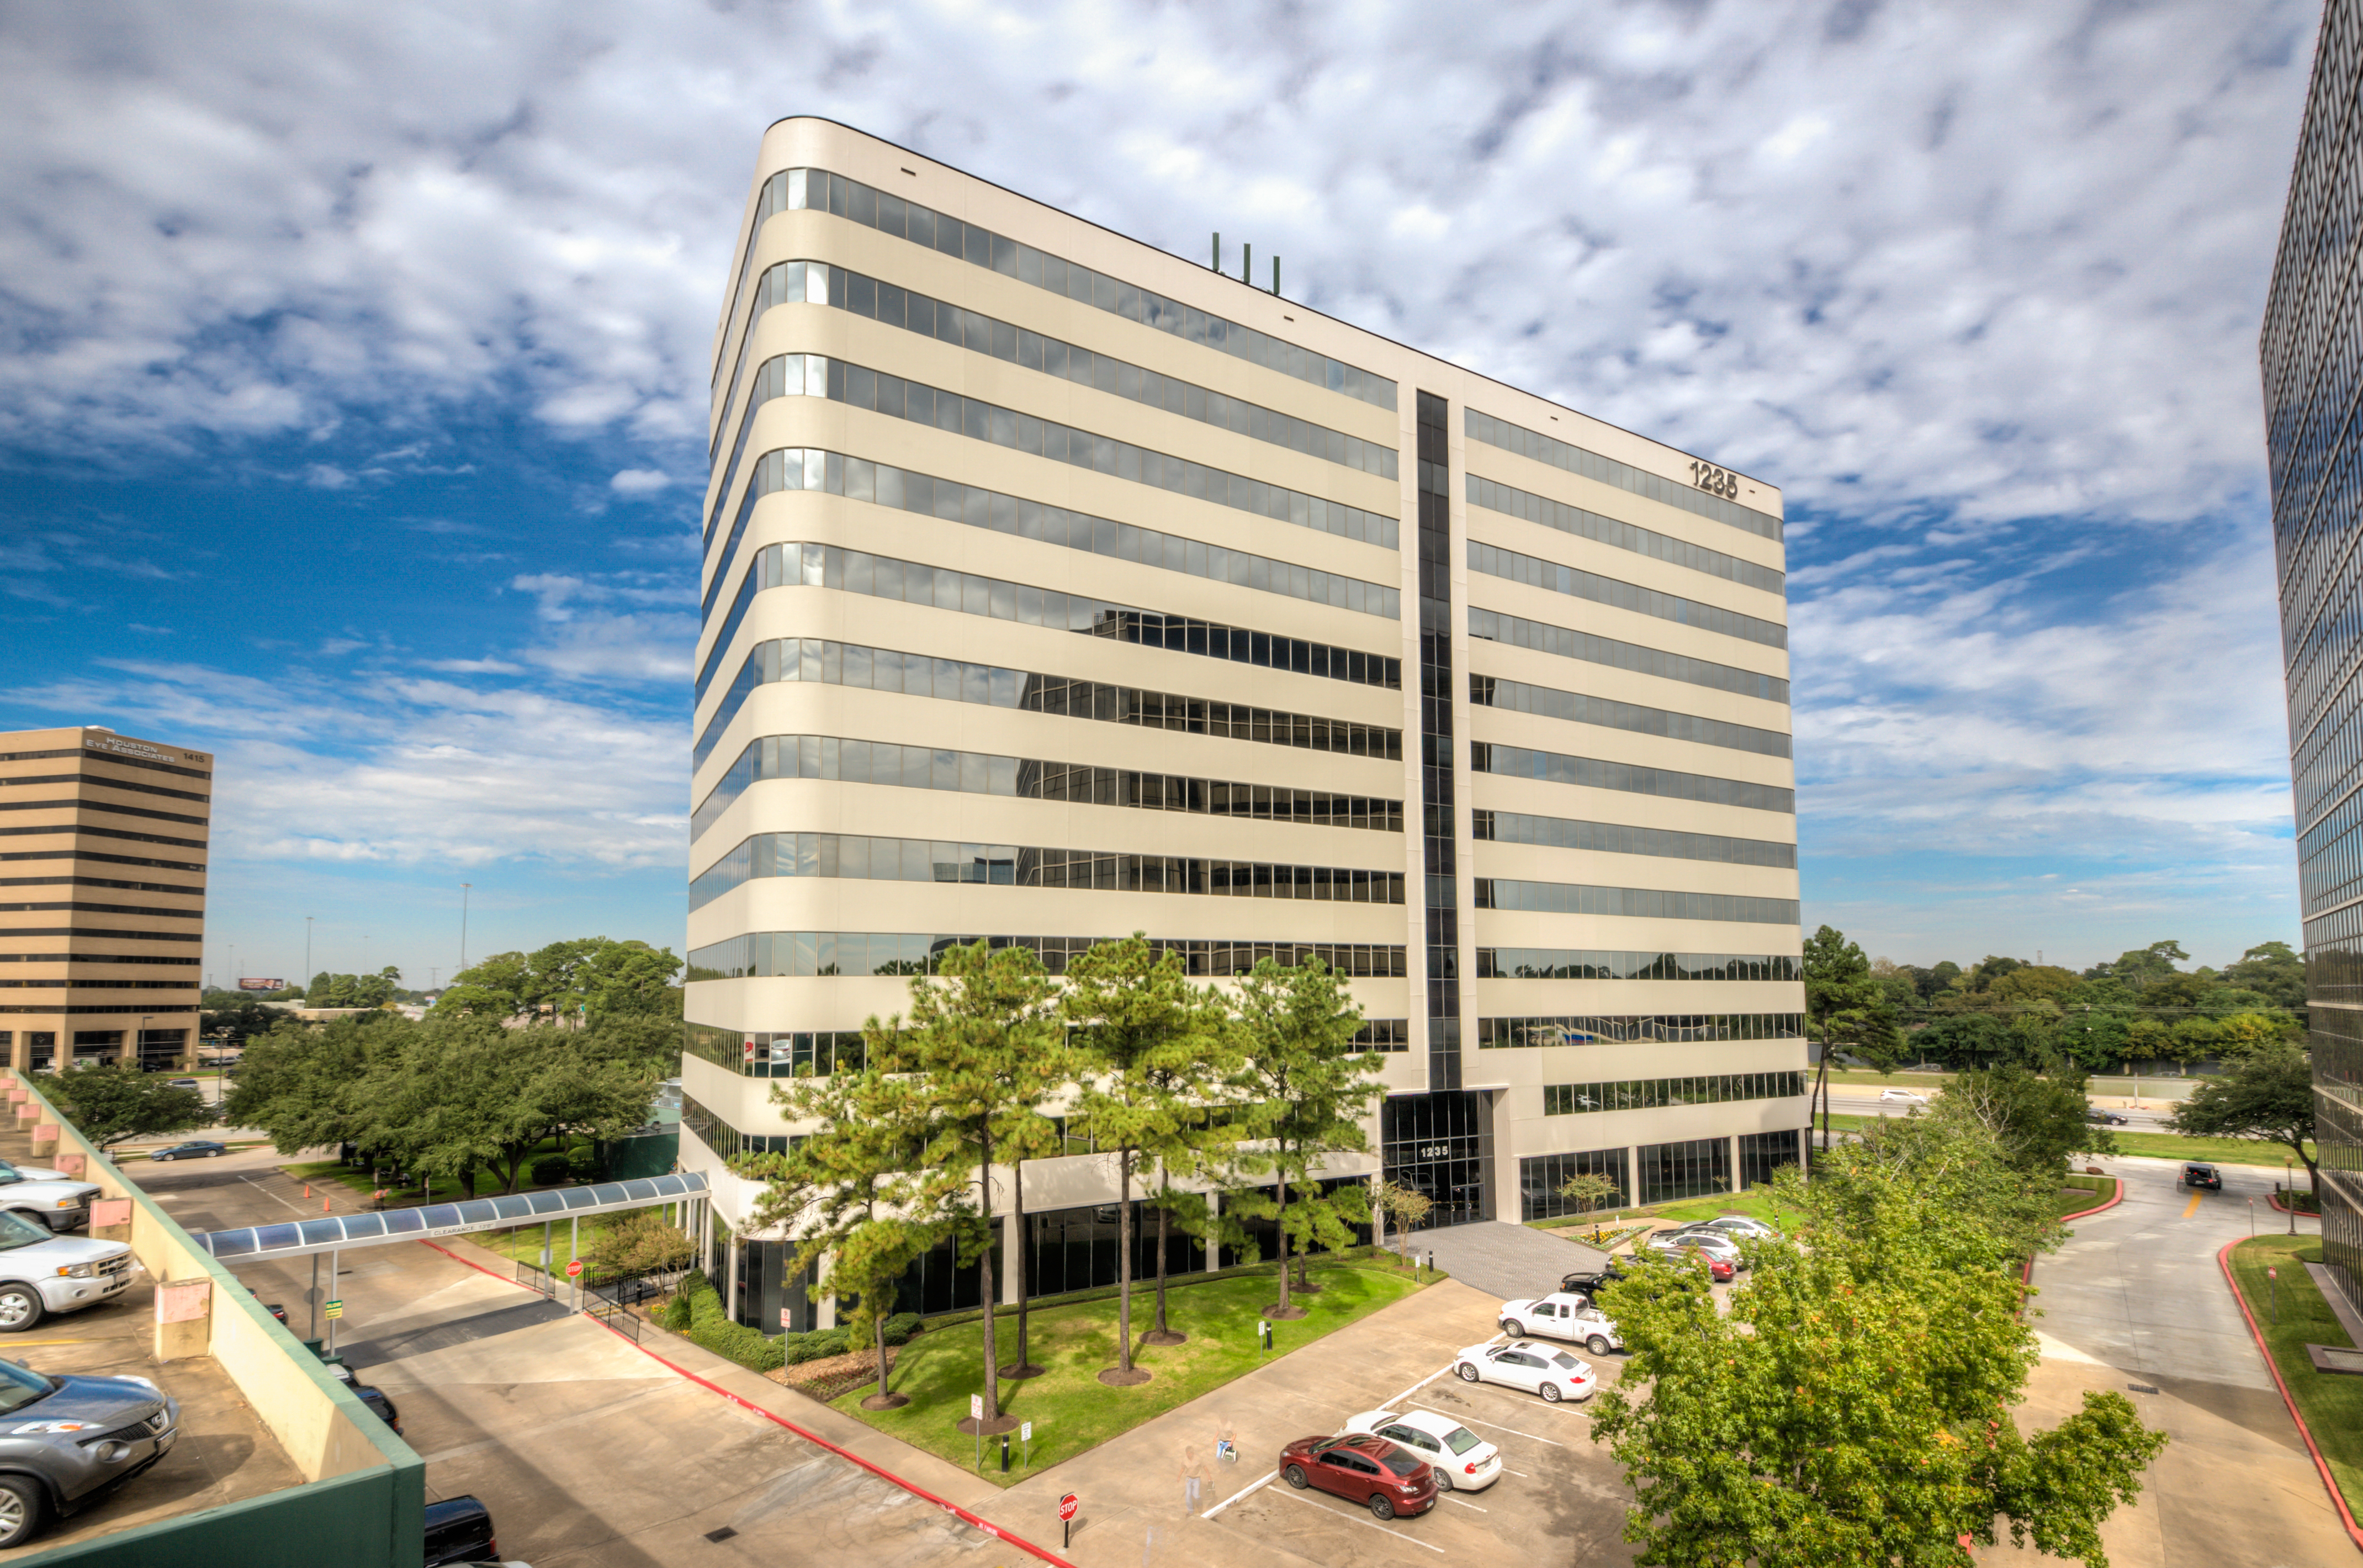 12-story building in ideal central Houston location